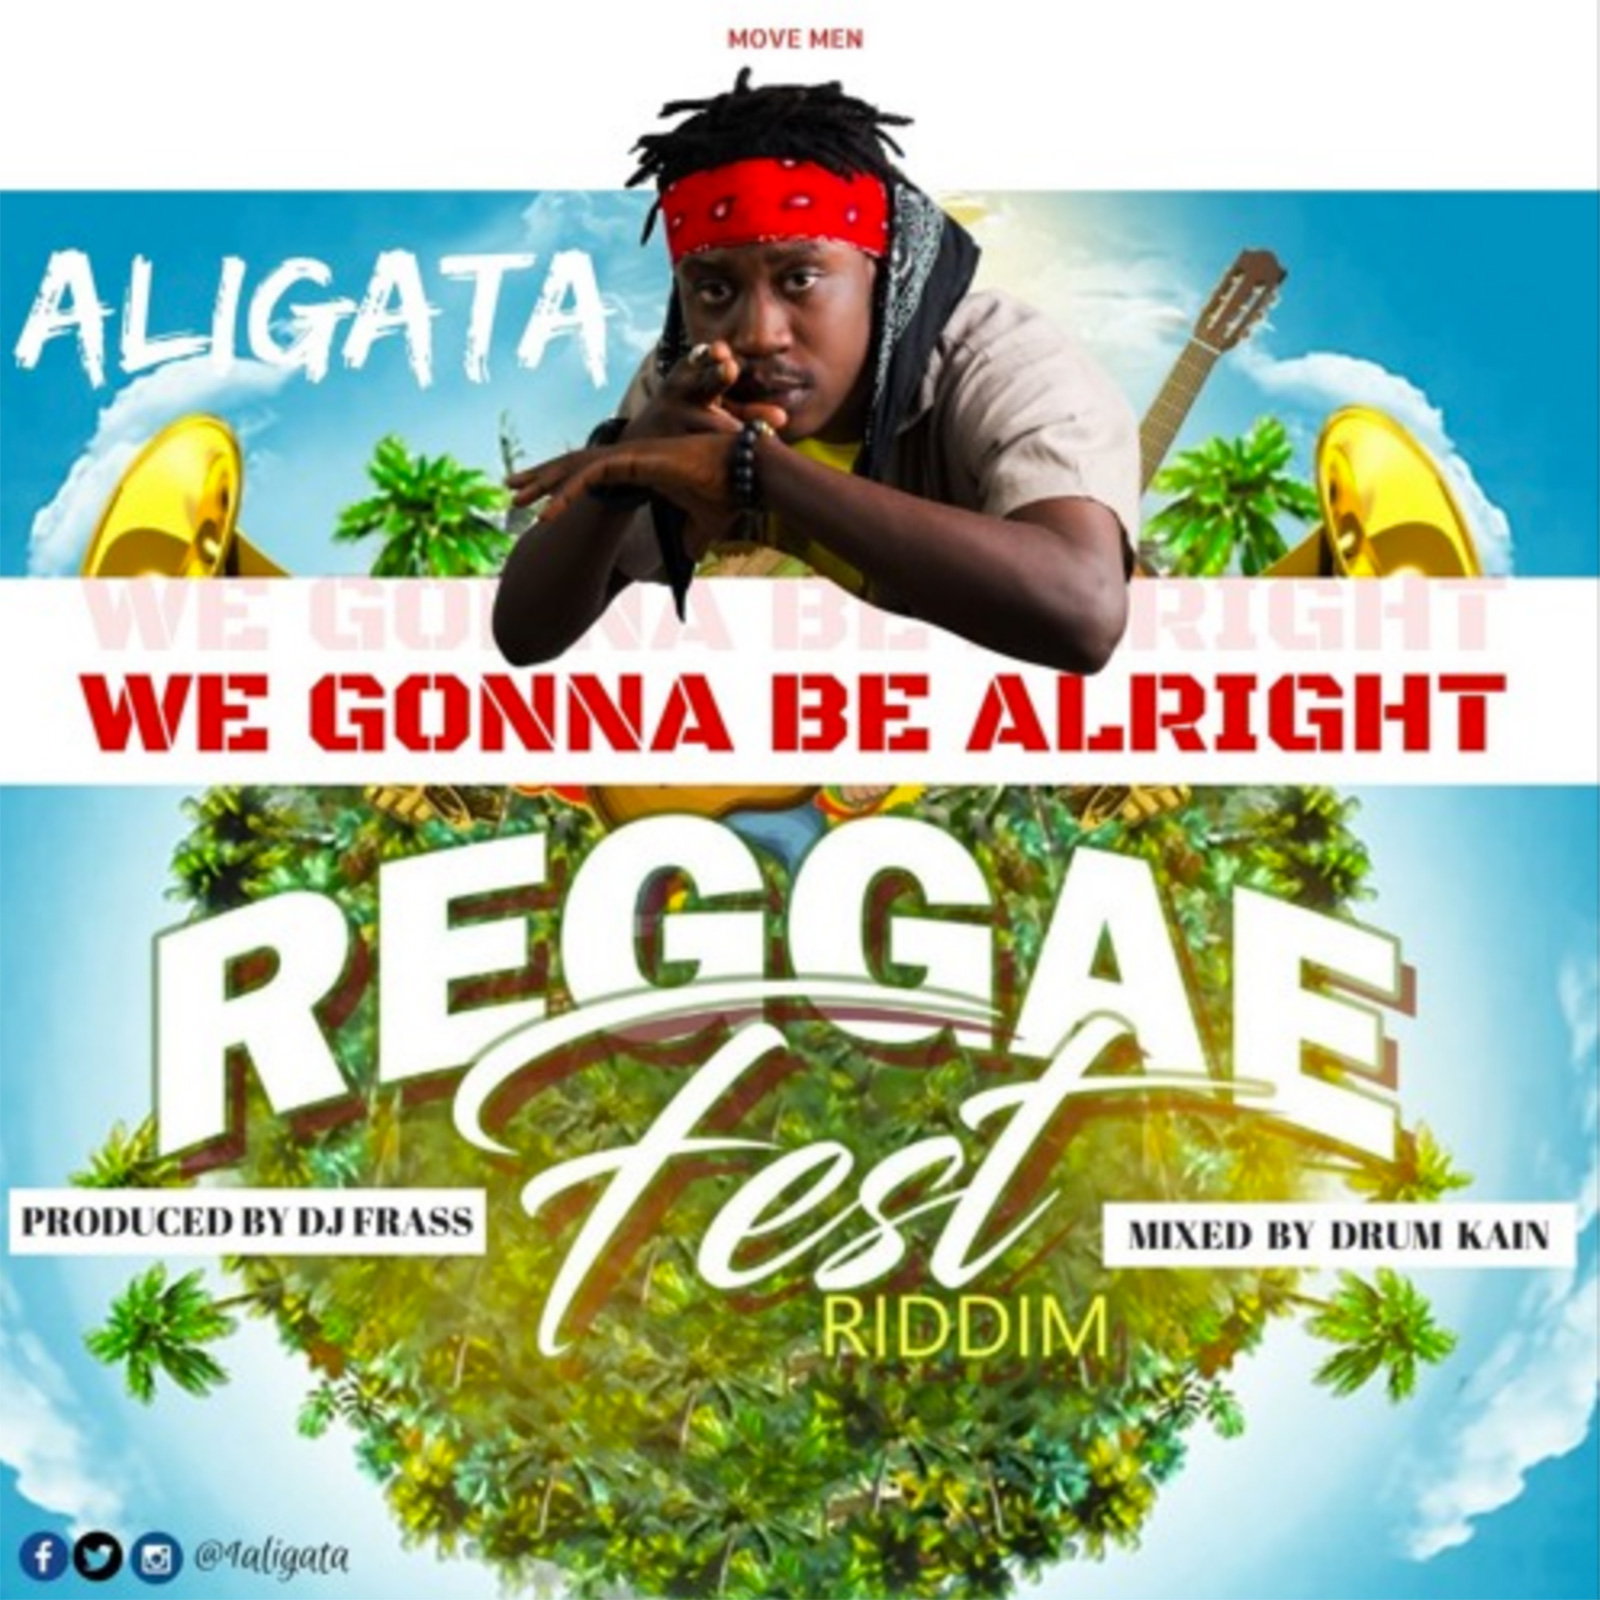 We Gonna Be Alright (Reggae Fest Riddim) by Aligata